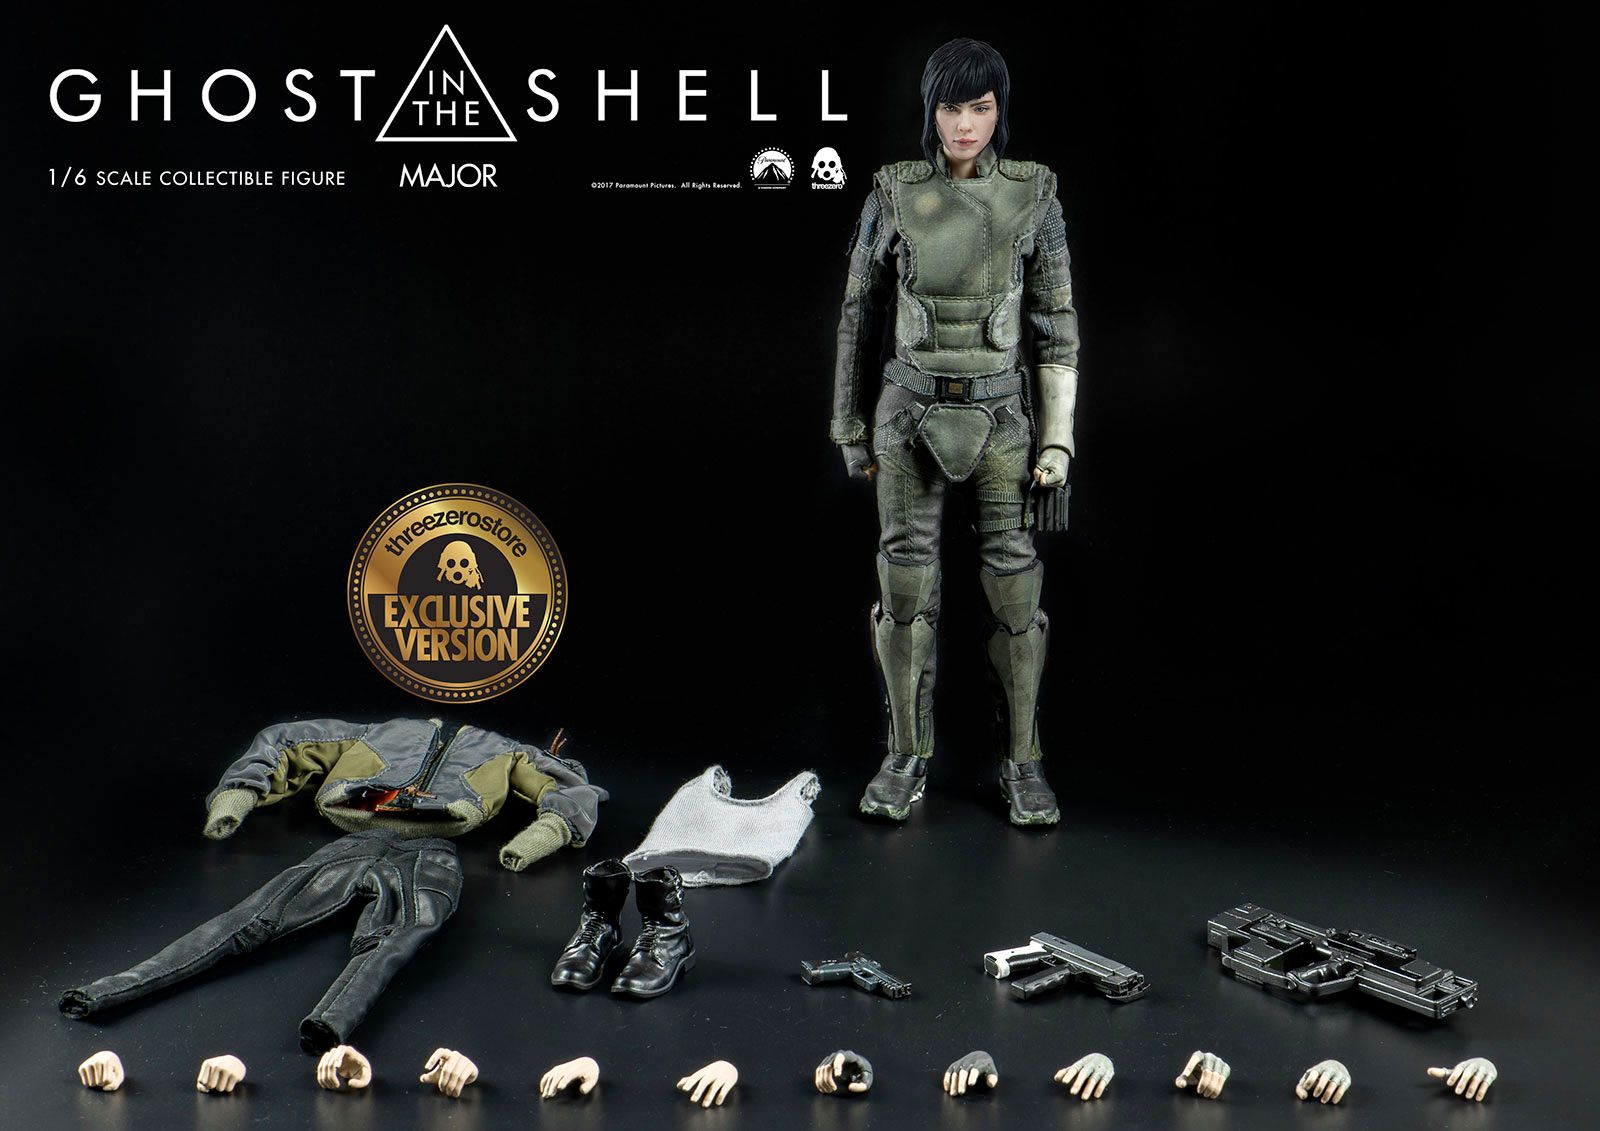 Ghost-In-The-Shell-MAJOR-Collectible-Action-Figure-14